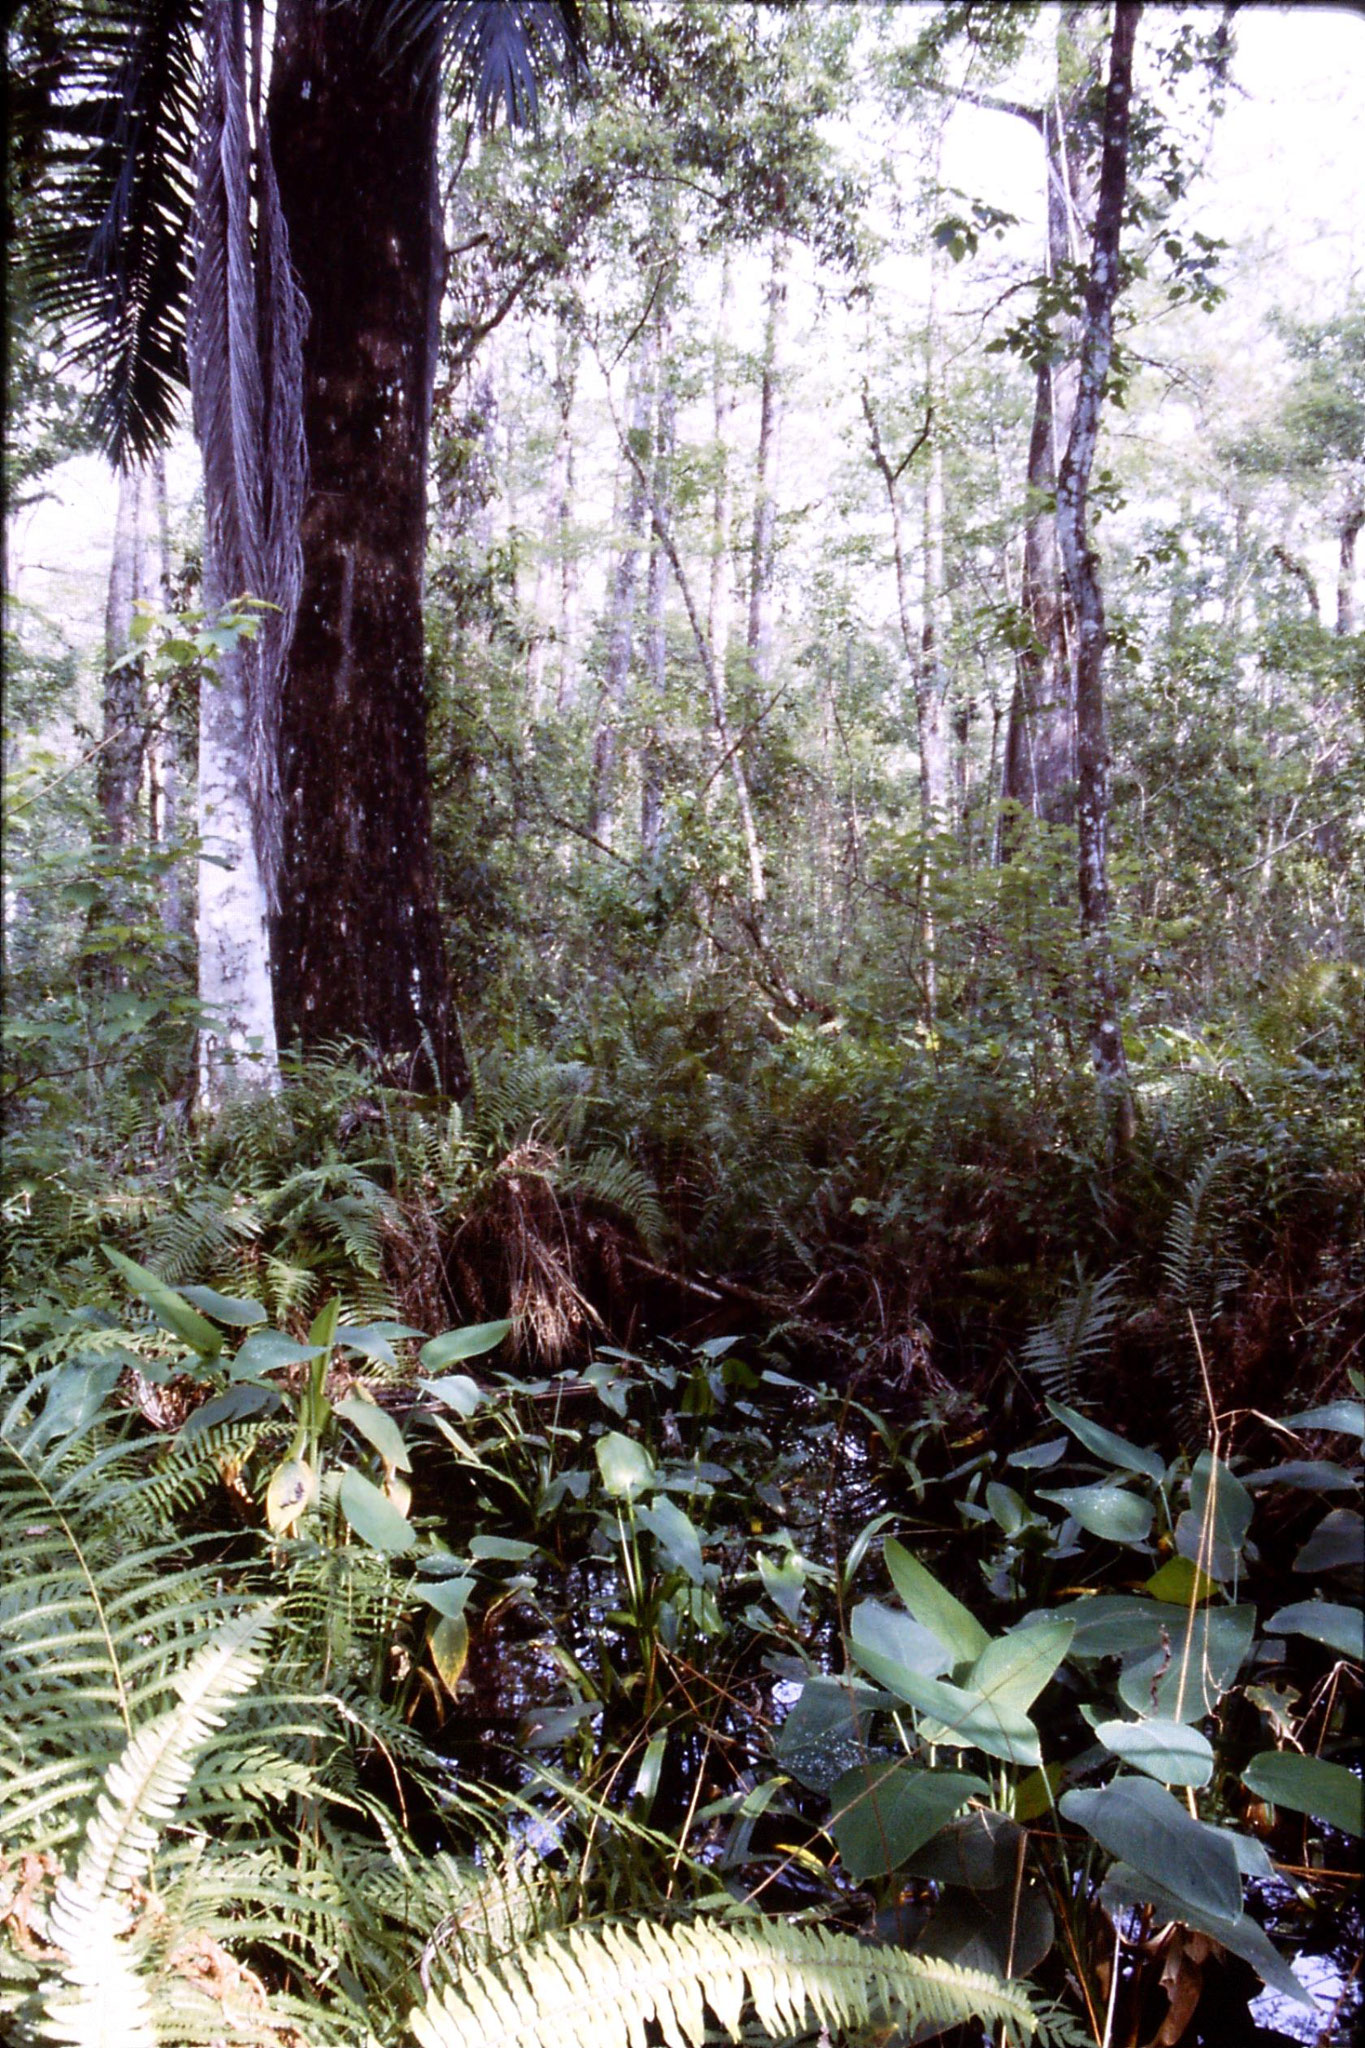 25/2/1991: 13: Corkscrew Swamp